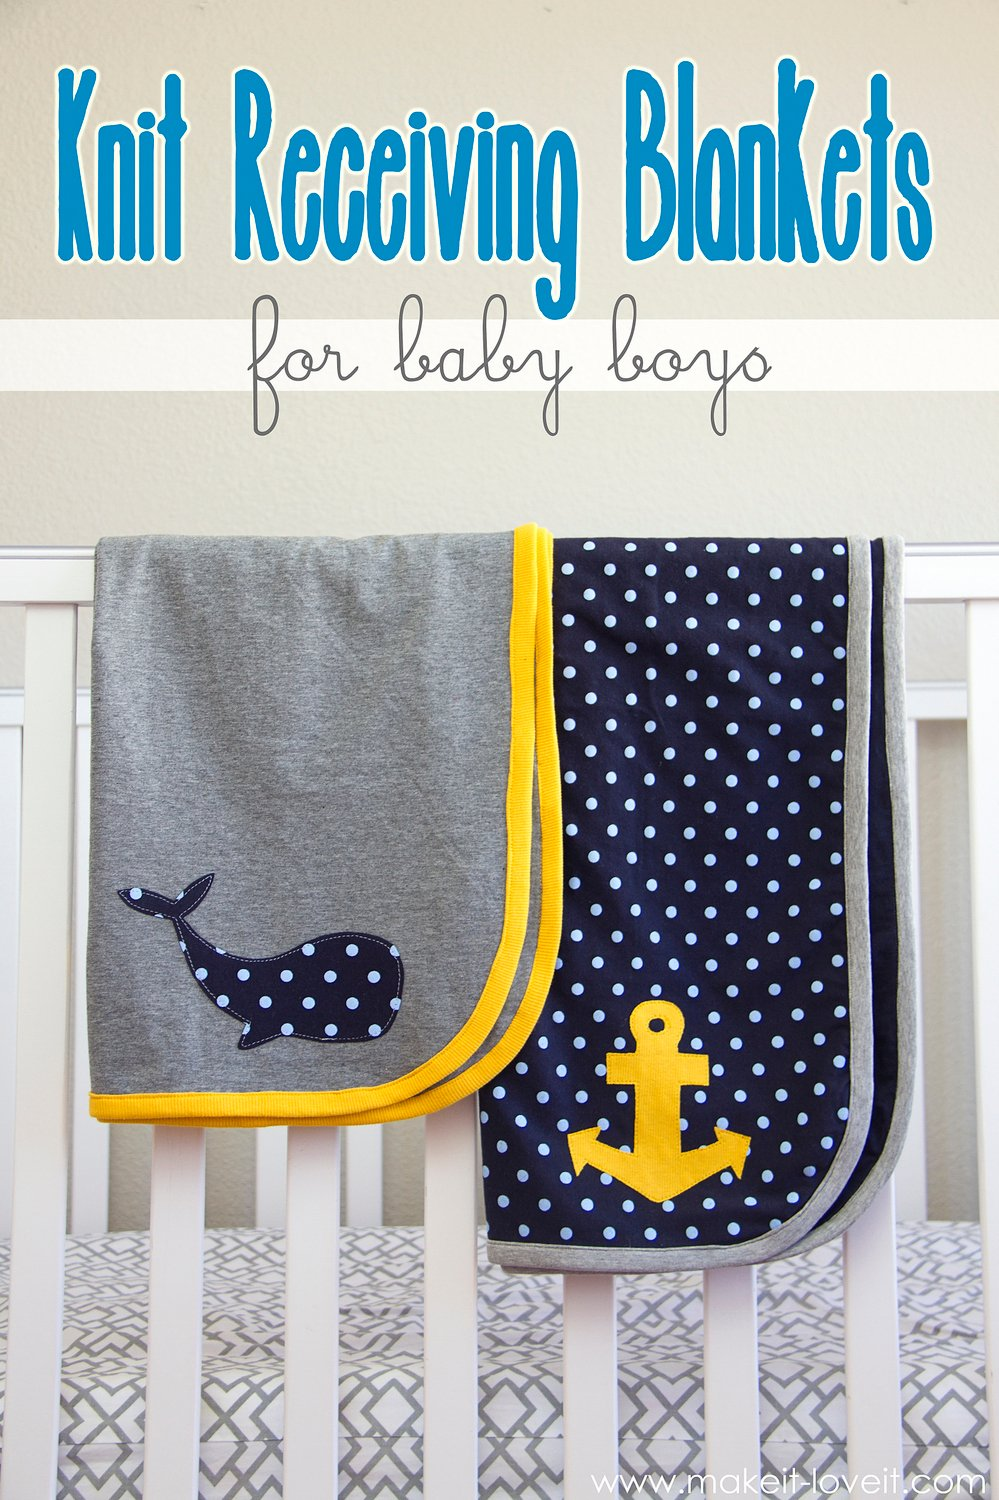 Knit receiving blankets for baby boys! (templates included…)